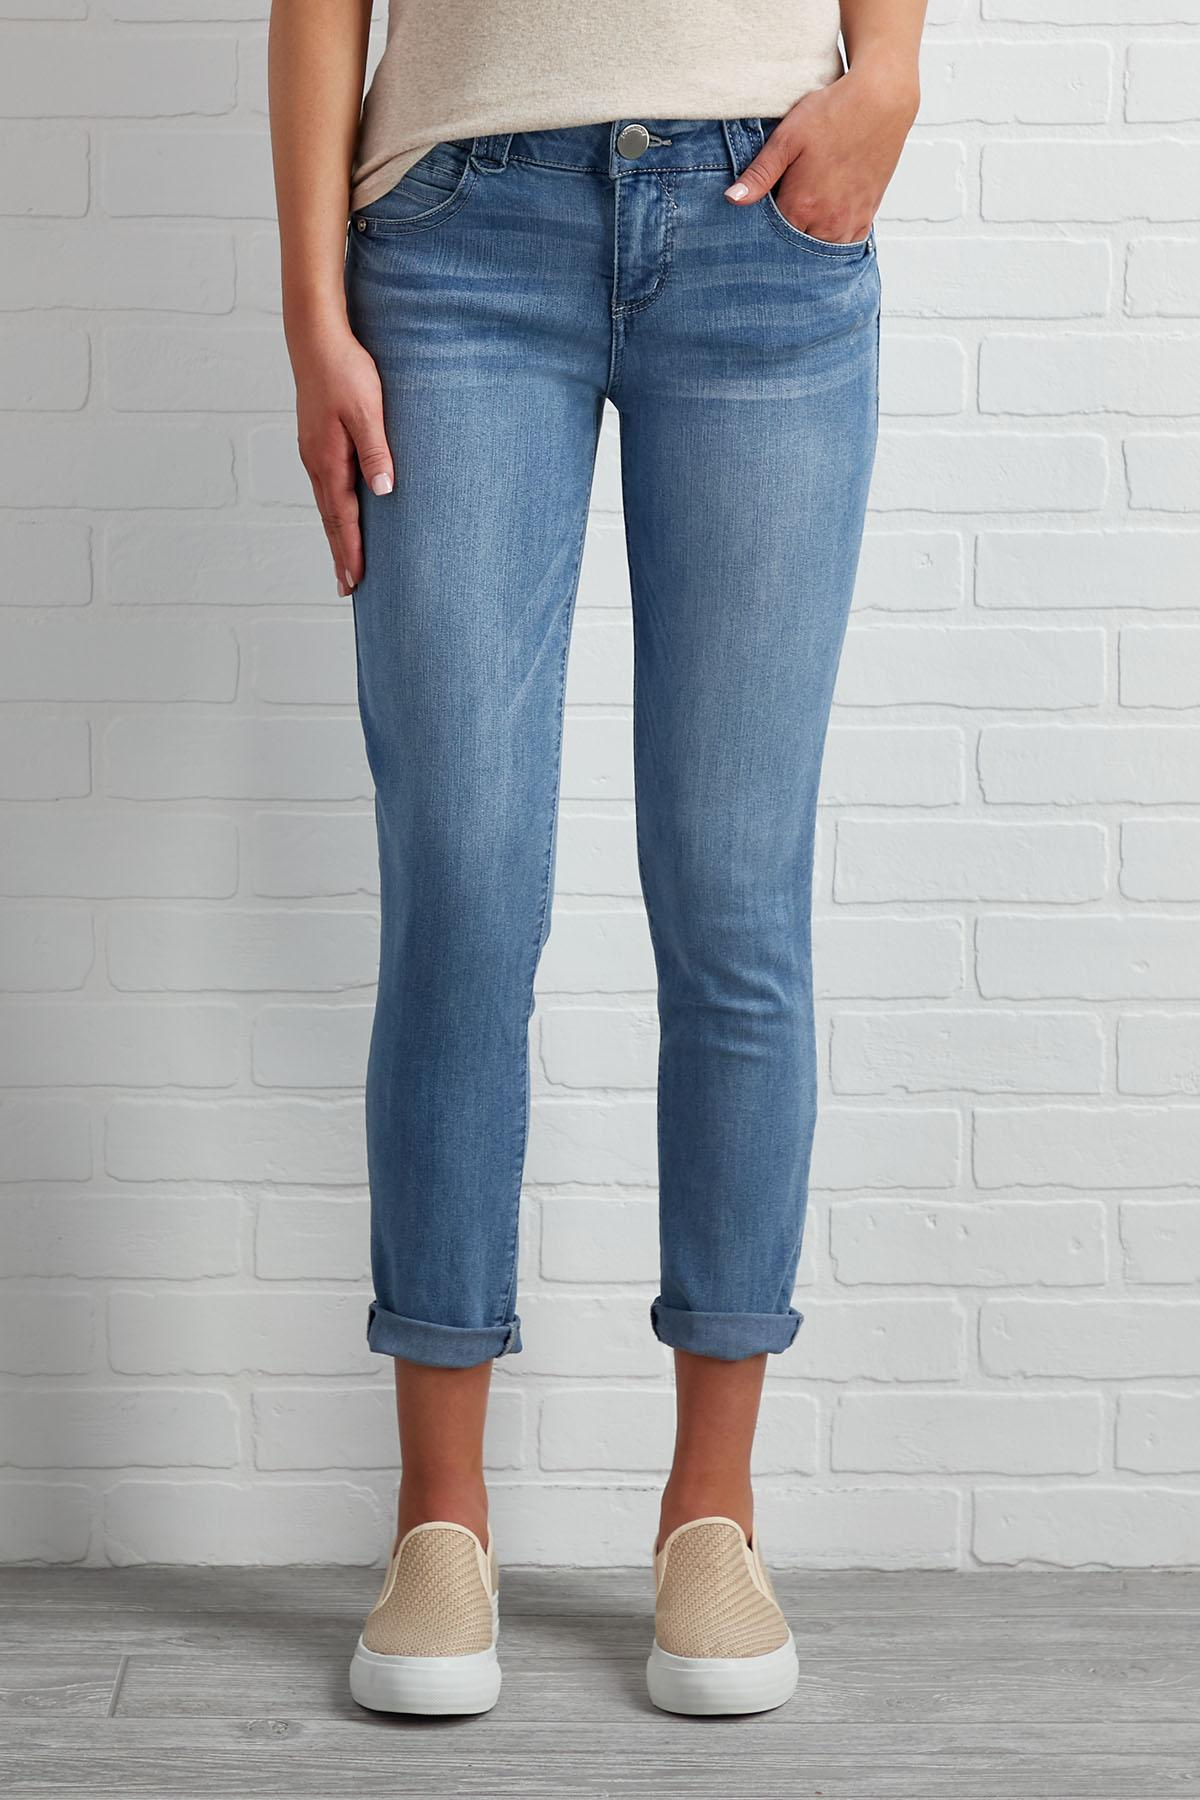 Your New Favorite Jeans